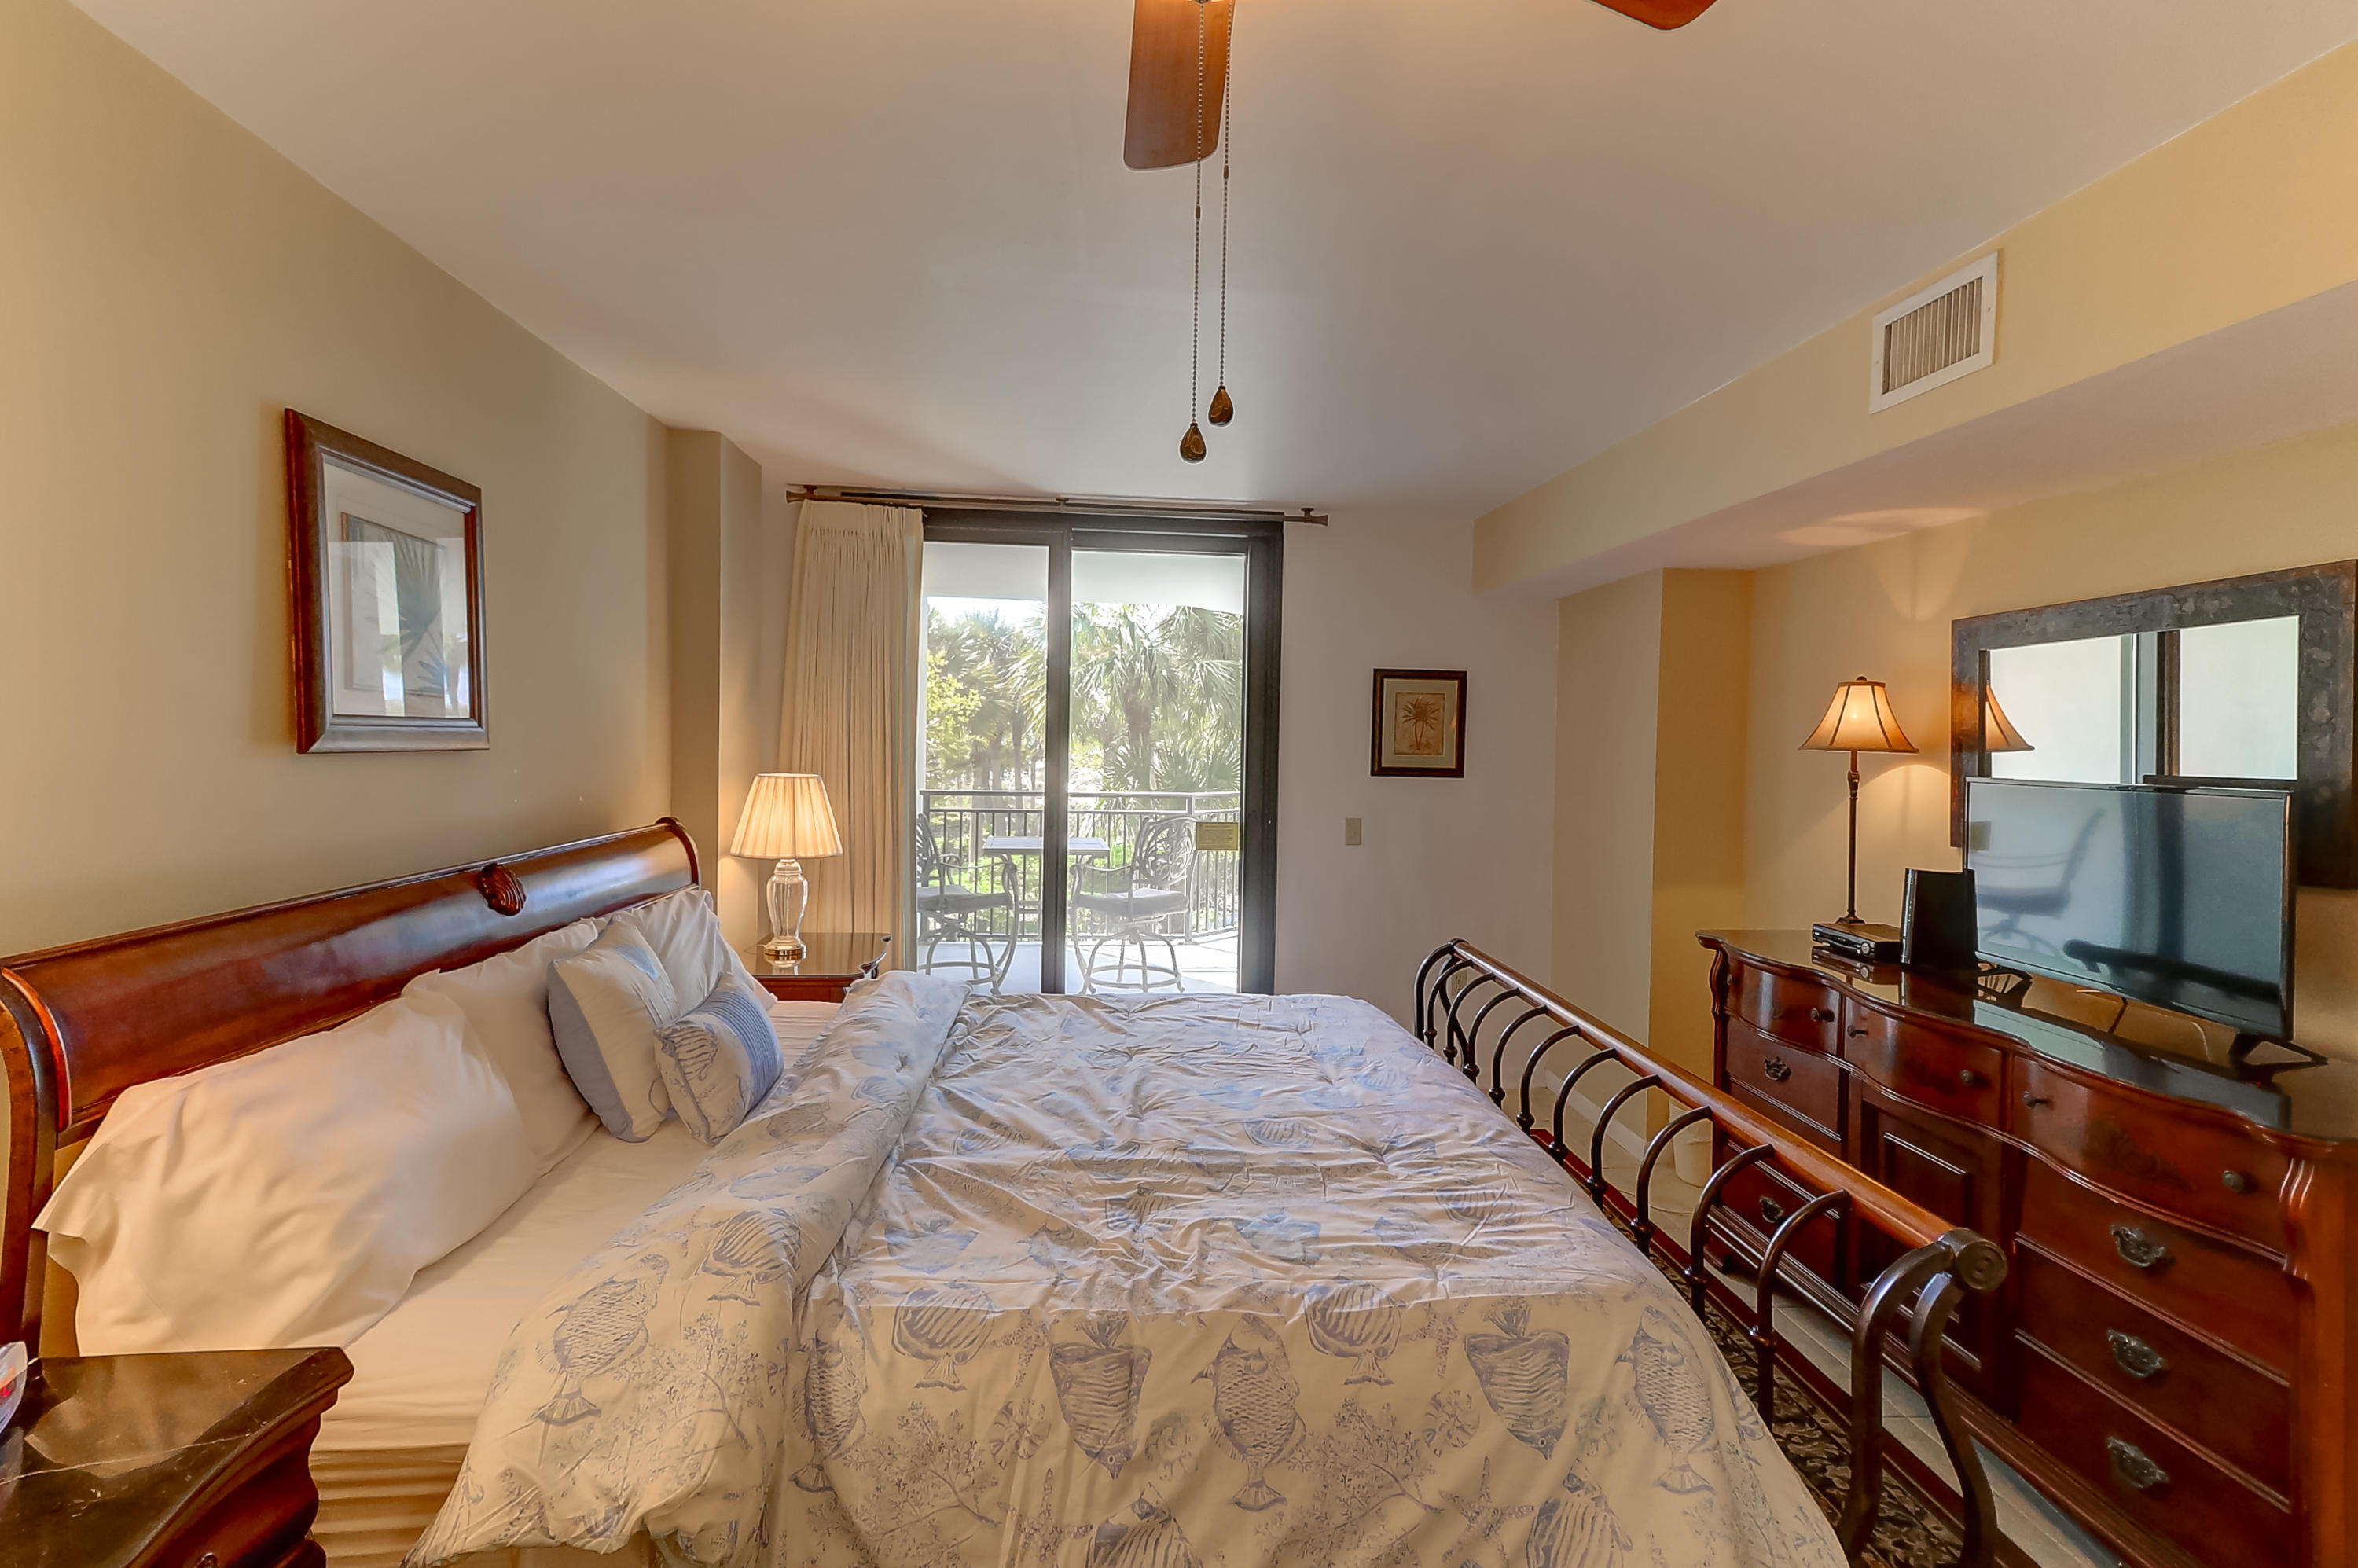 Wild Dunes Homes For Sale - 116-C Shipwatch, Isle of Palms, SC - 13